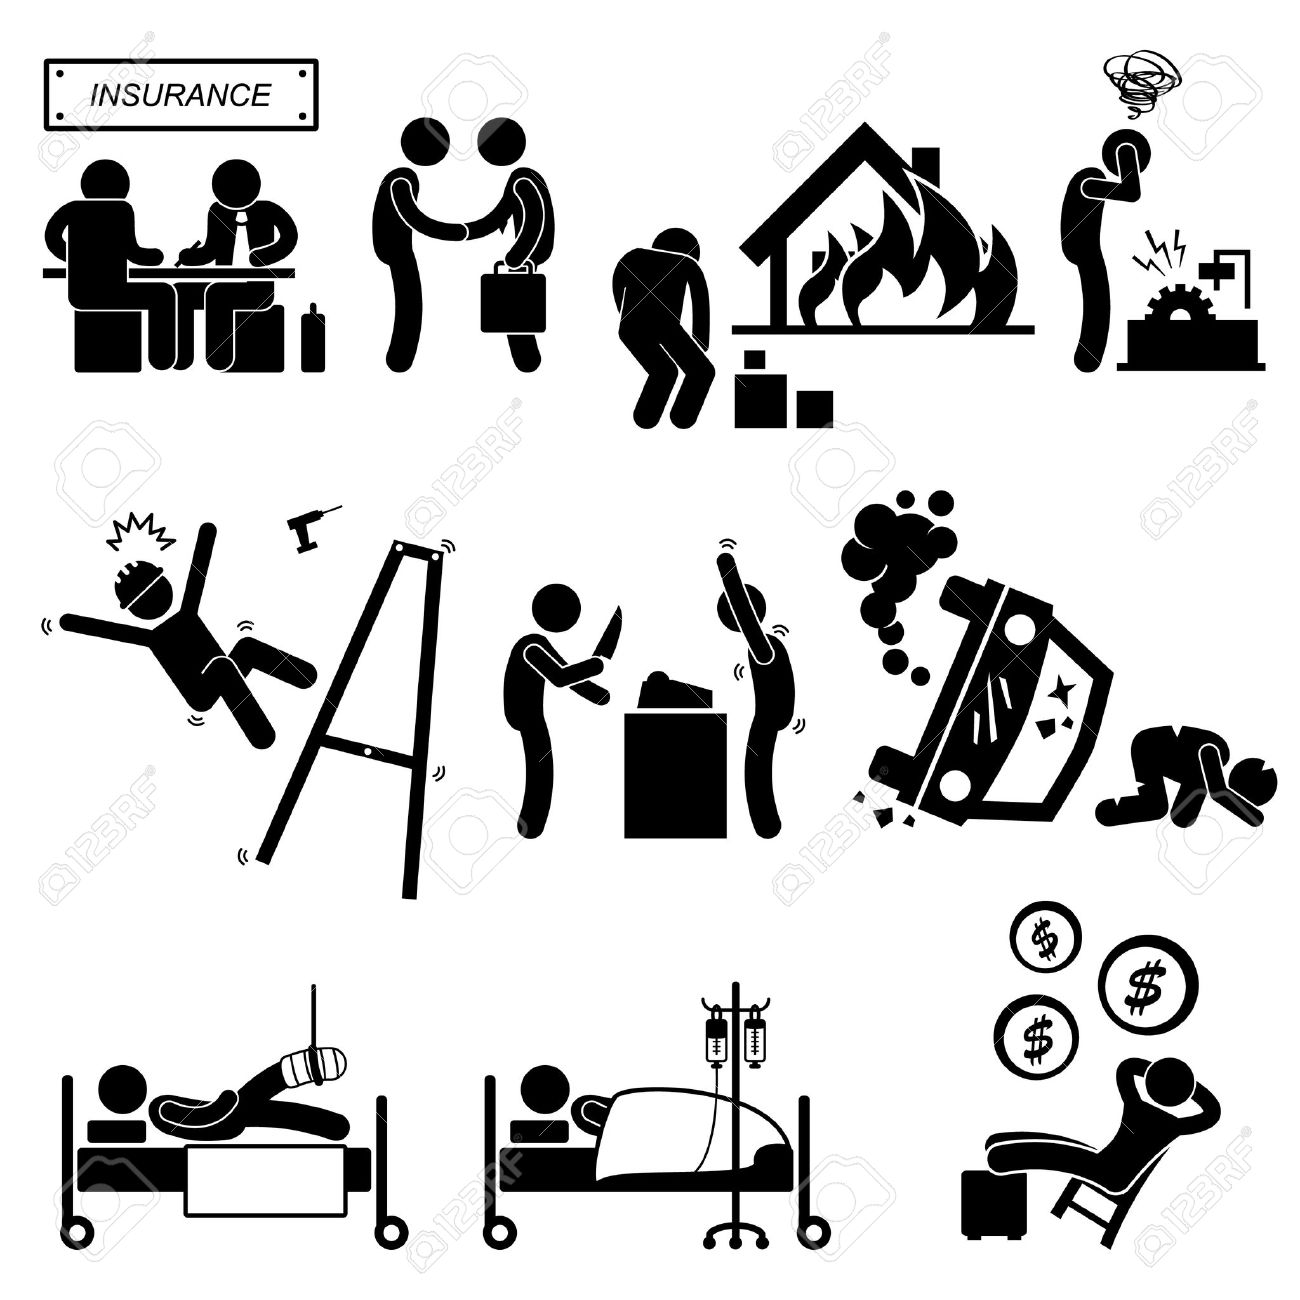 Insurance Agent Property Accident Robbery Medical Coverage Relieve Stick Figure Pictogram Icon - 23205839